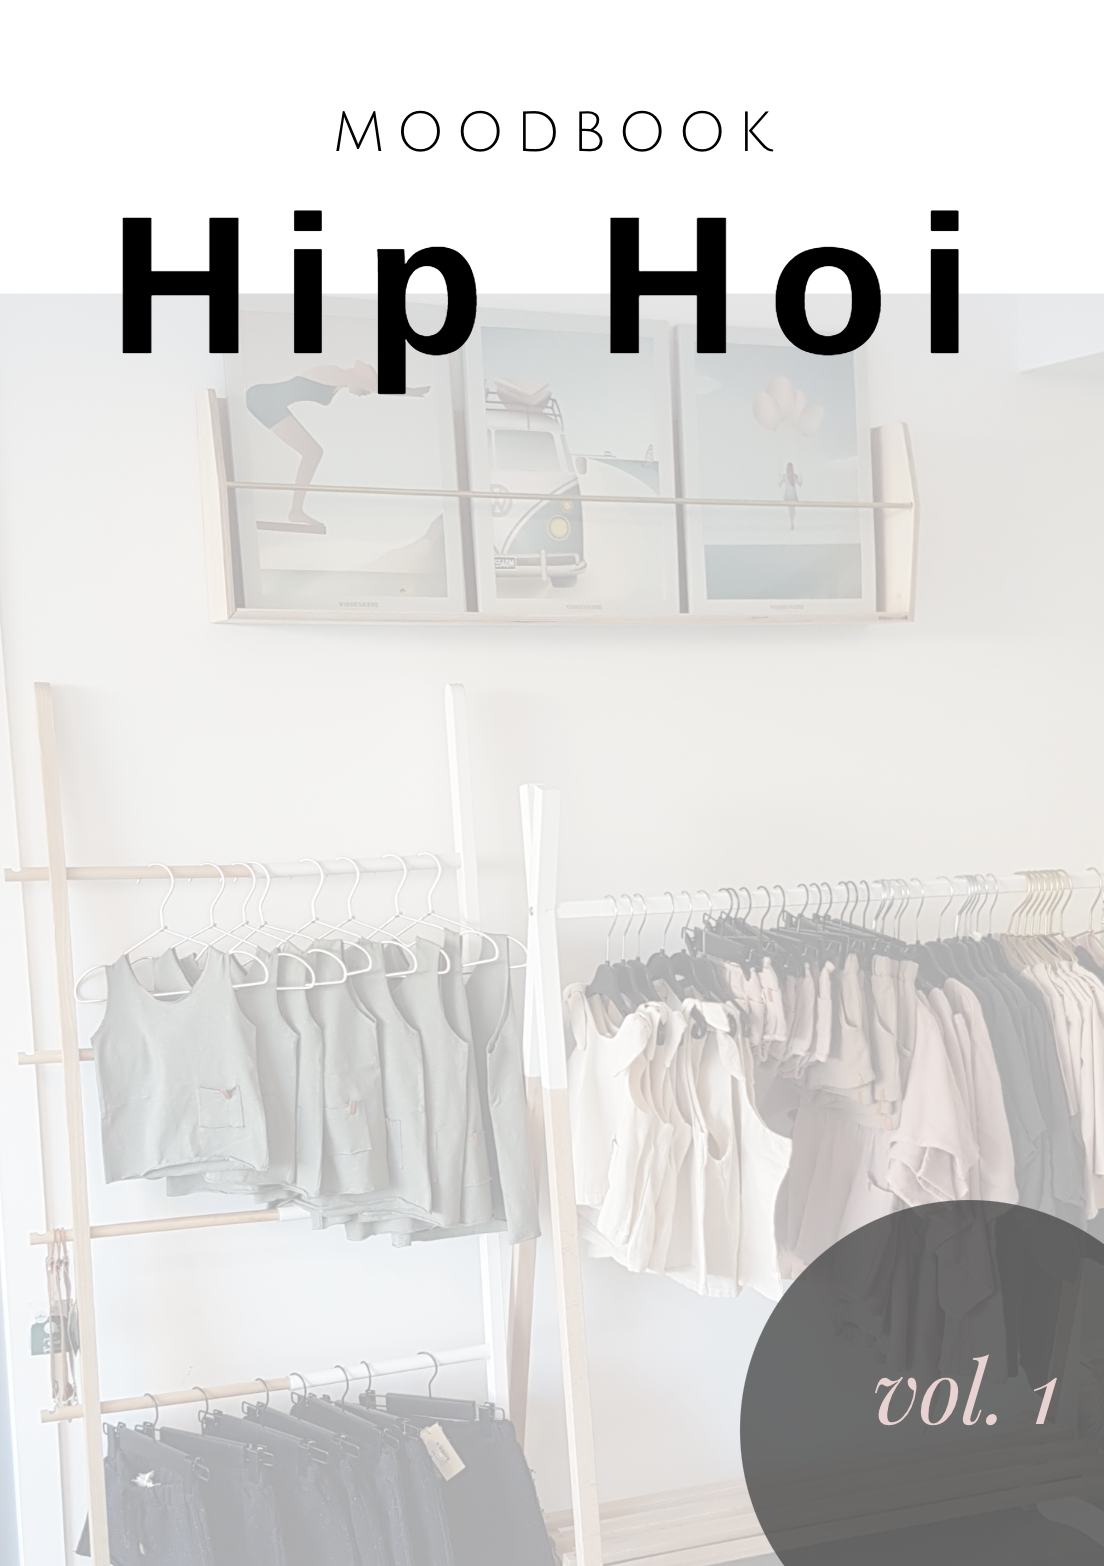 Hip Hoi - Moodbook Vol 1